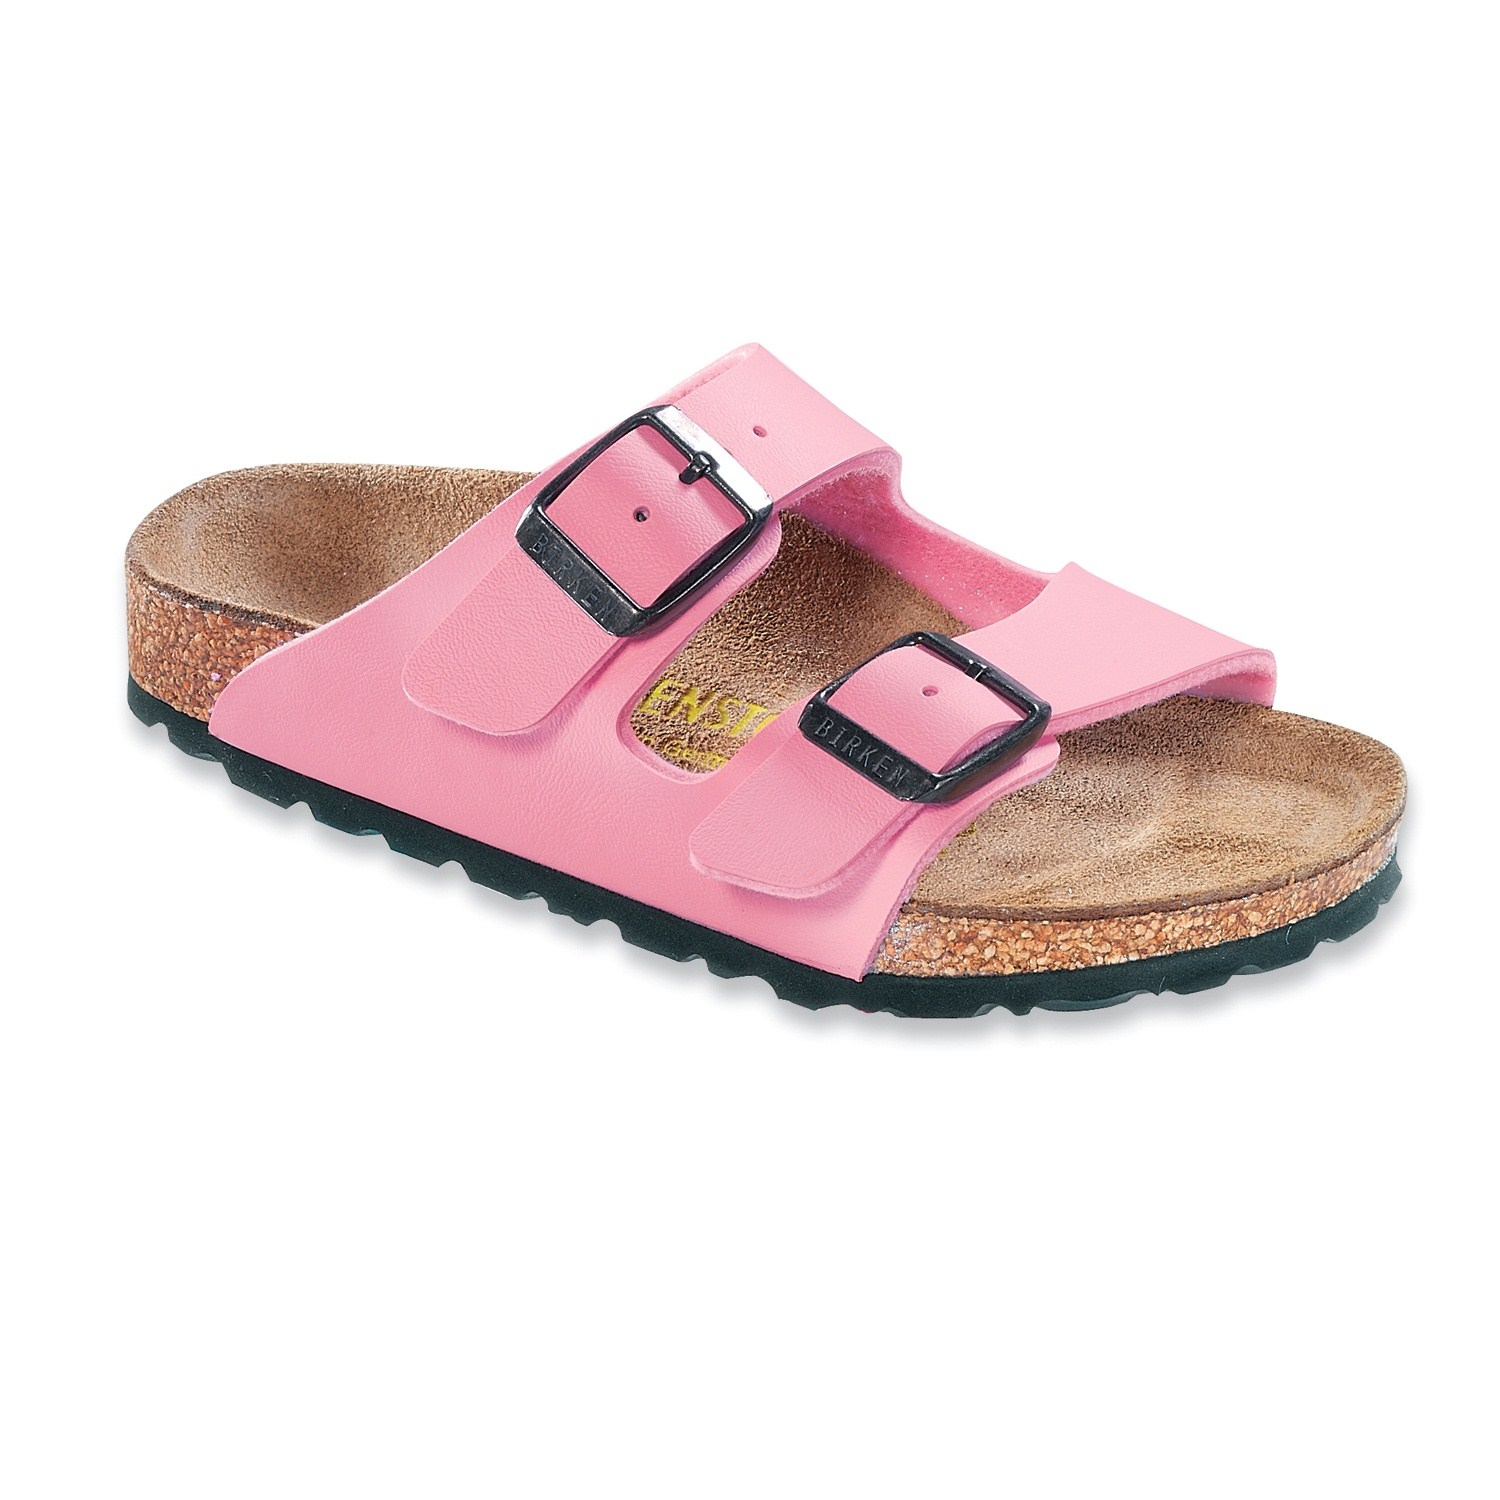 birkenstock arizona for kids pantoffels slippers. Black Bedroom Furniture Sets. Home Design Ideas